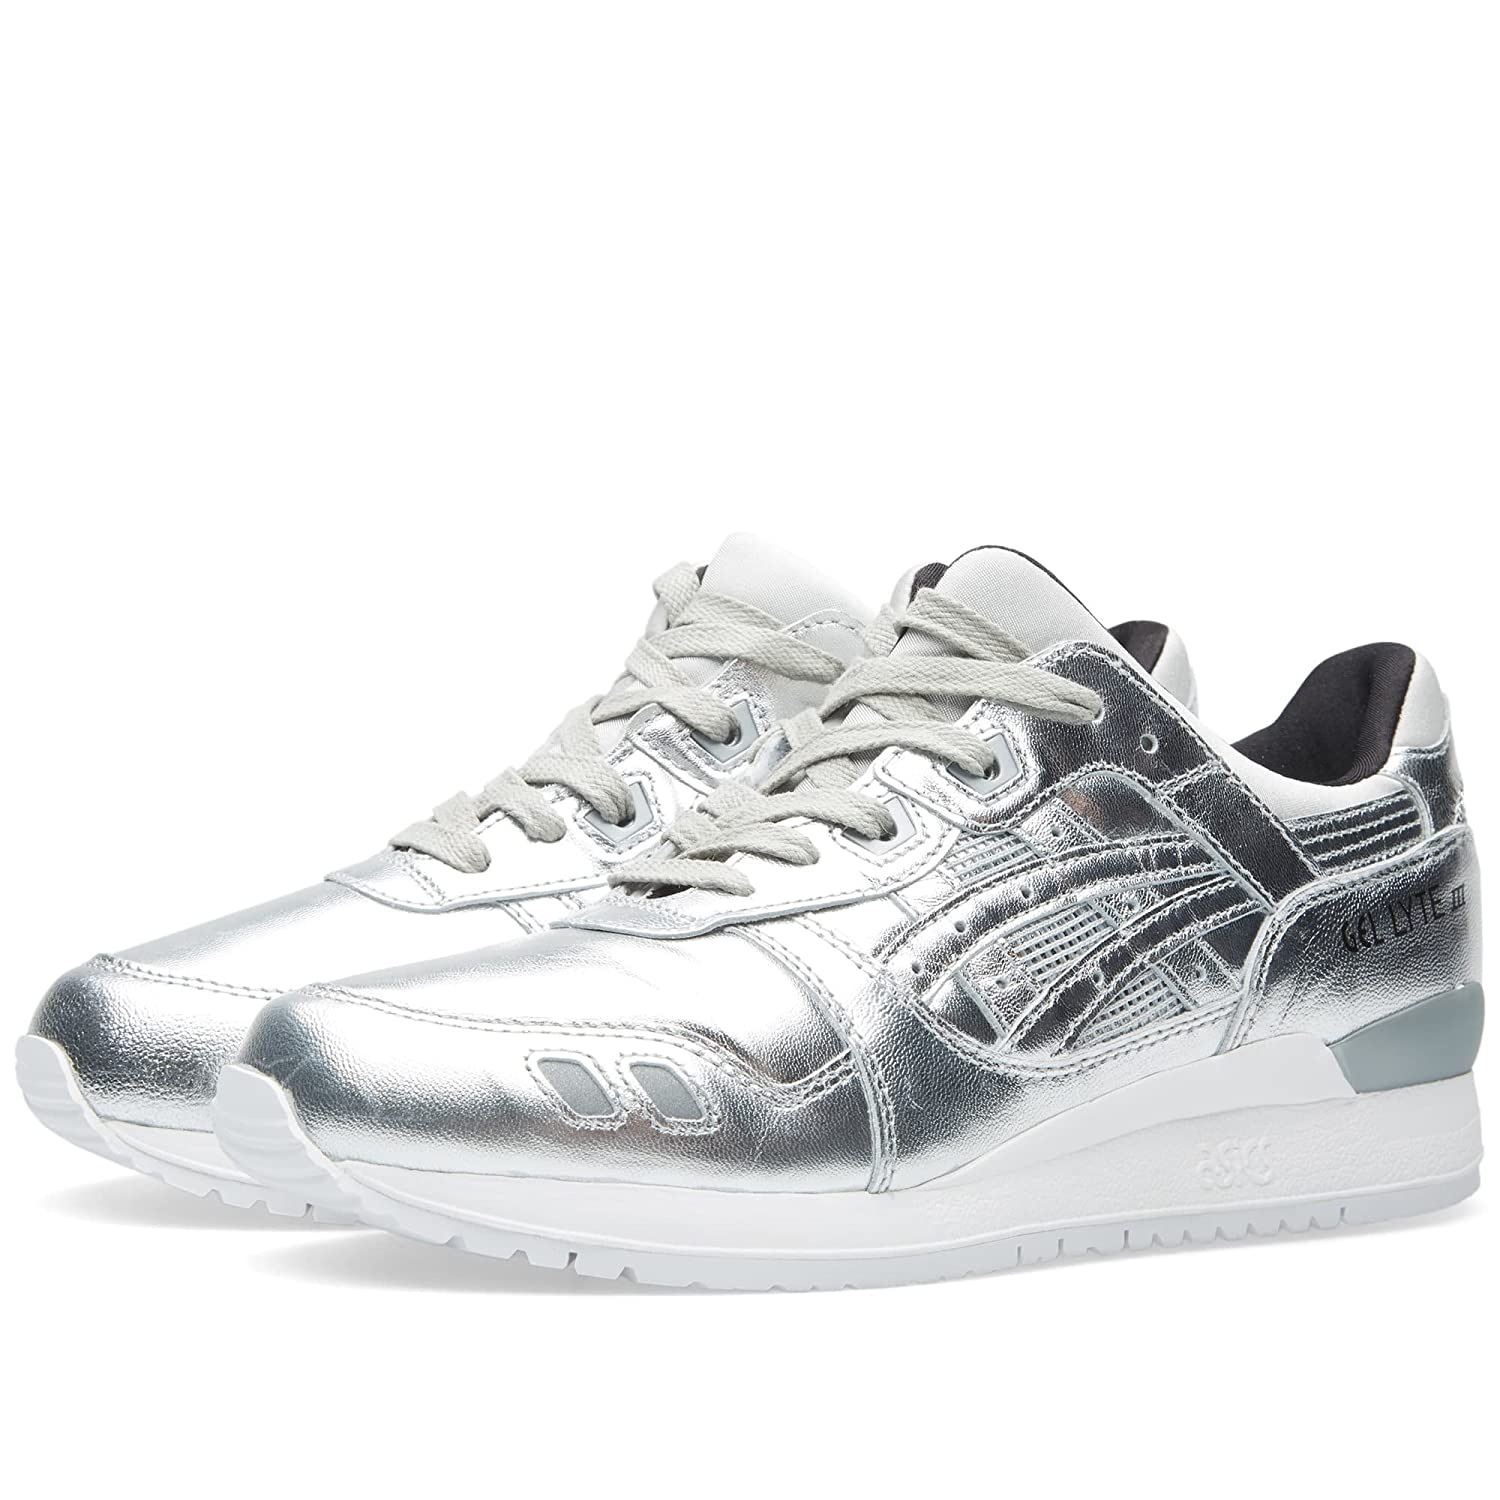 ASICS GEL-LYTE III Champagne Holiday Pack Men's Sneakers (HL504)